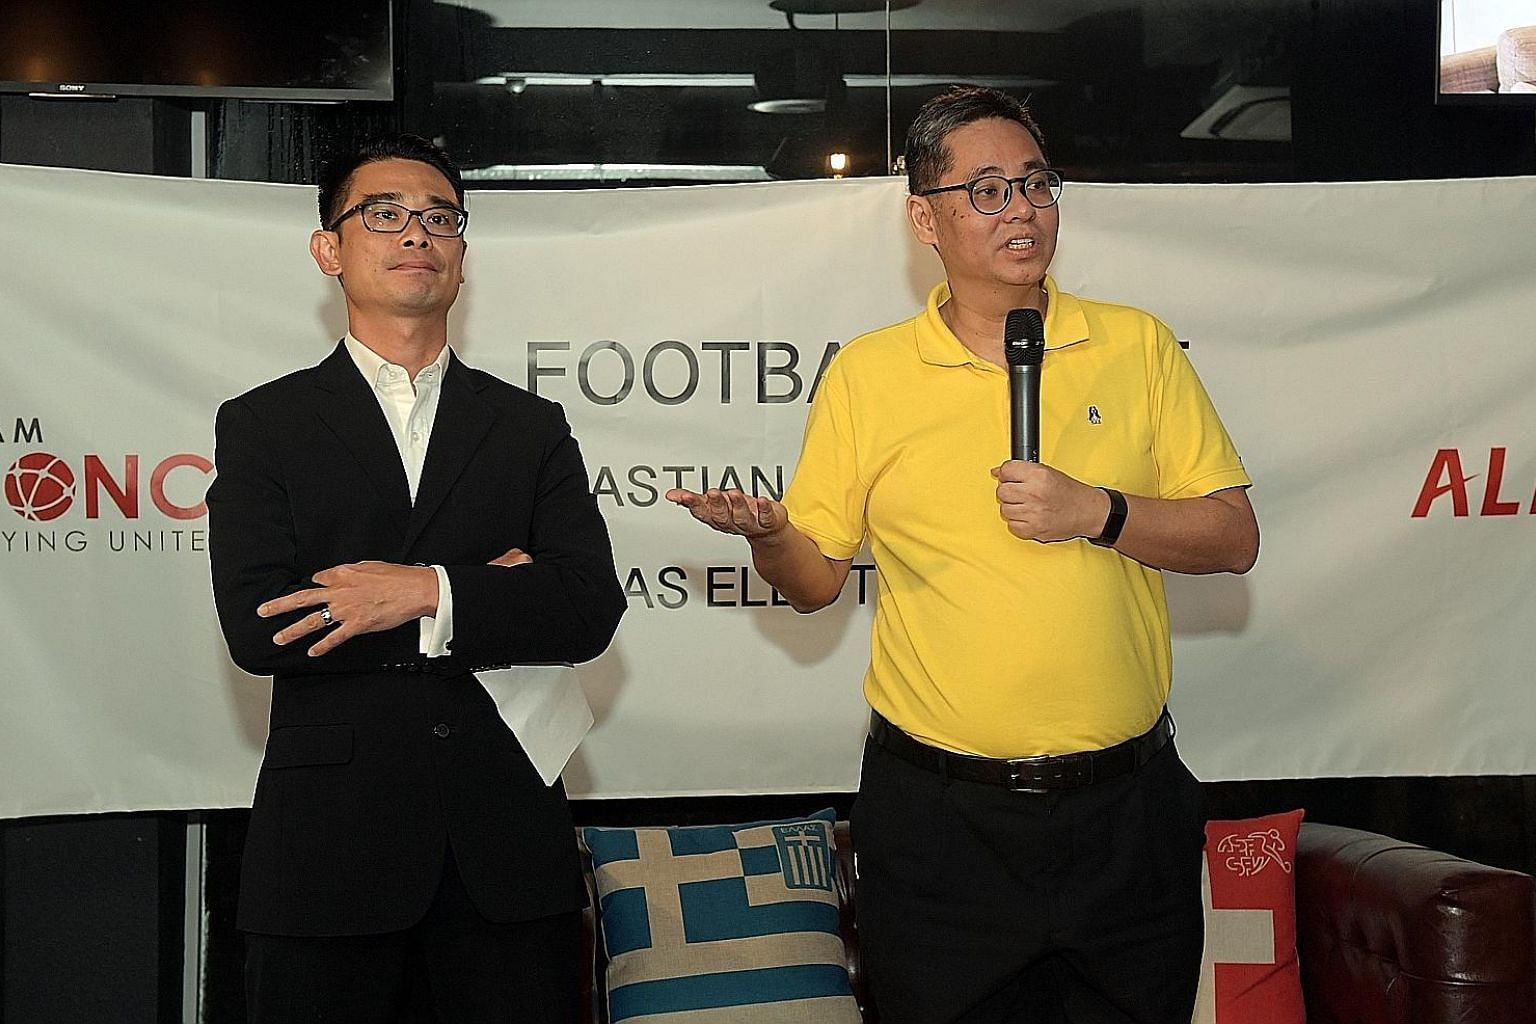 Individual candidates Sebastian Tan (left) and James Lim at a press conference yesterday, where they outlined their plans to improve Singapore football, should they be elected to the council at Saturday's FAS polls.